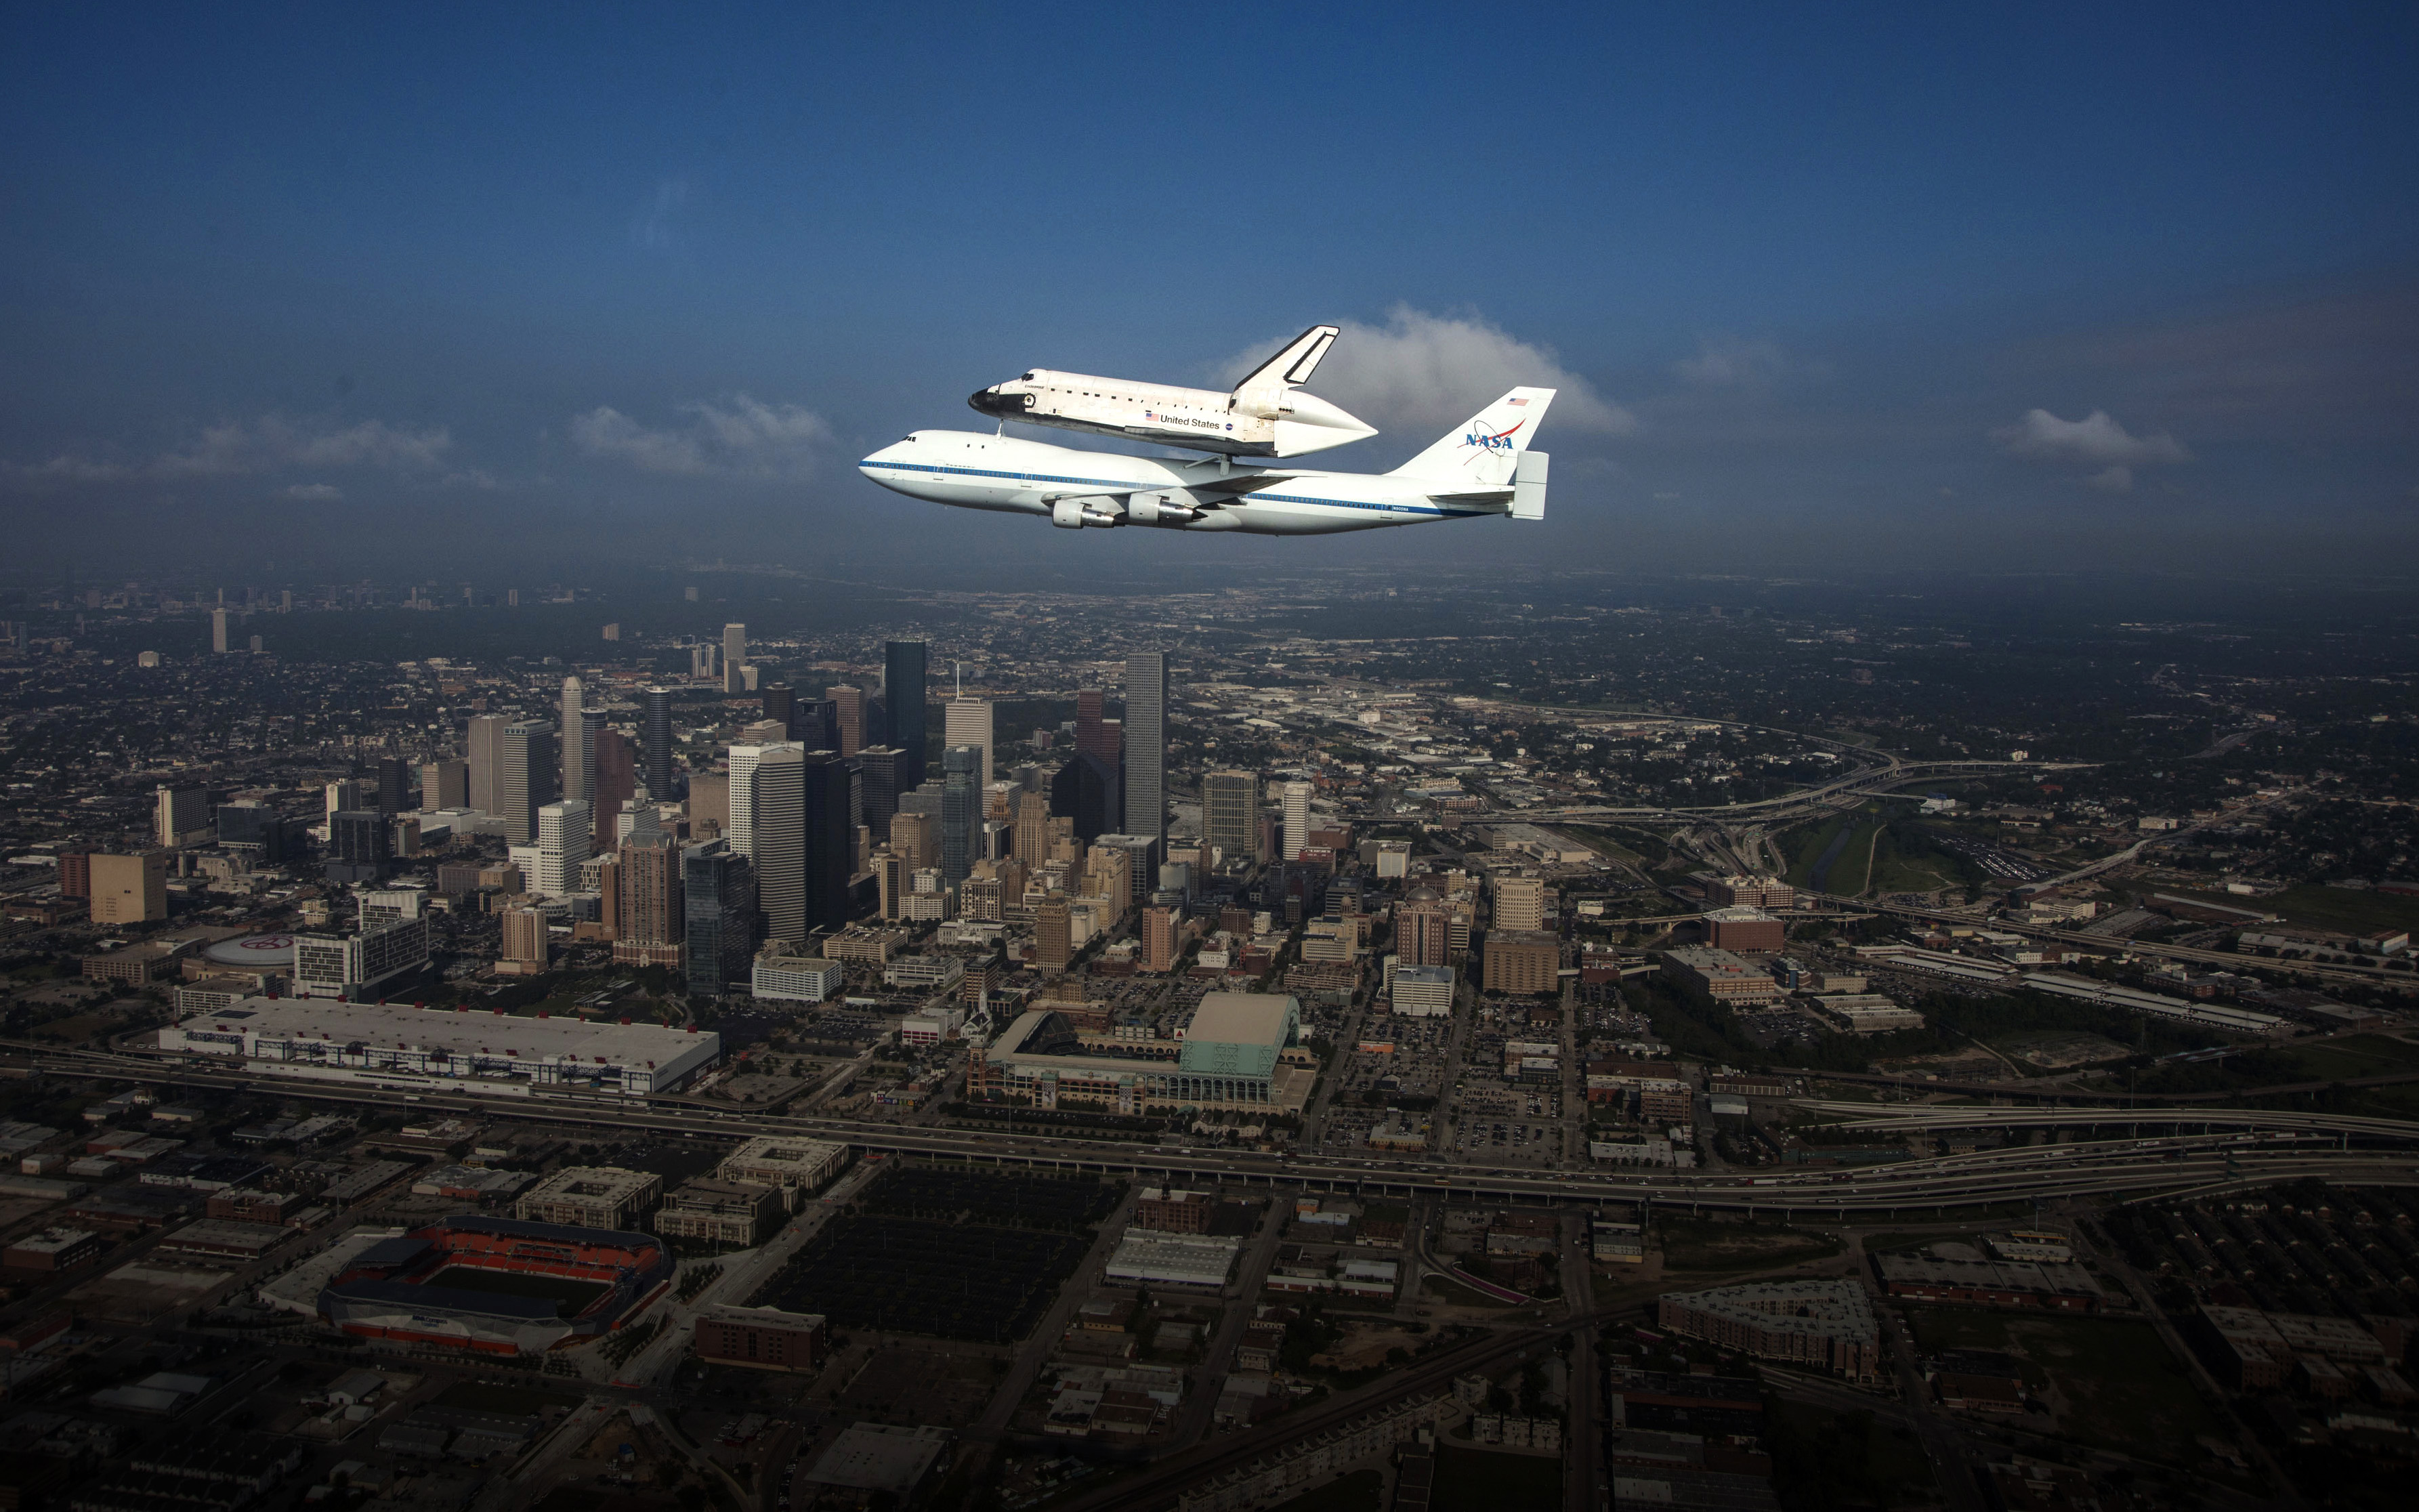 The shuttle carrier aircraft flies over Houston.